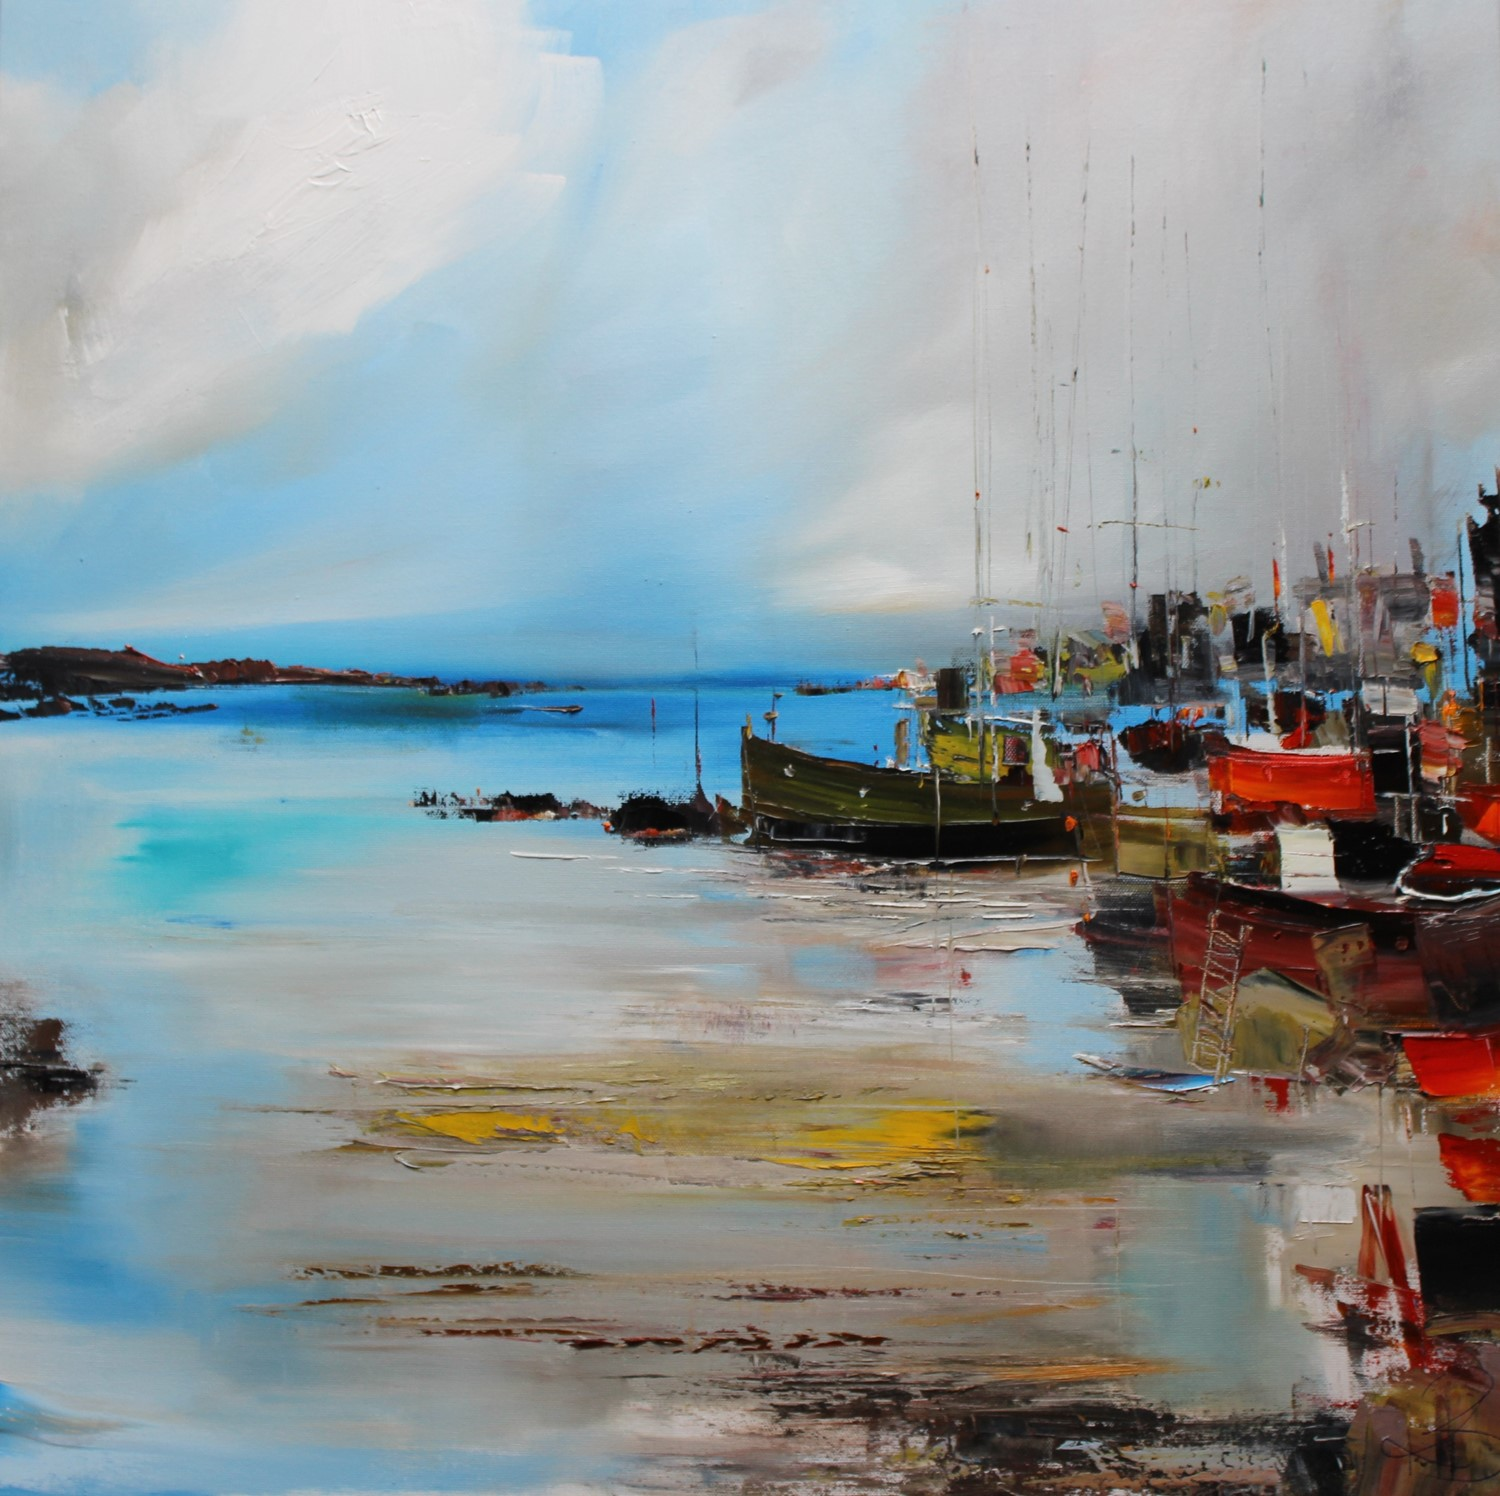 'At the Harbour for the Day' by artist Rosanne Barr